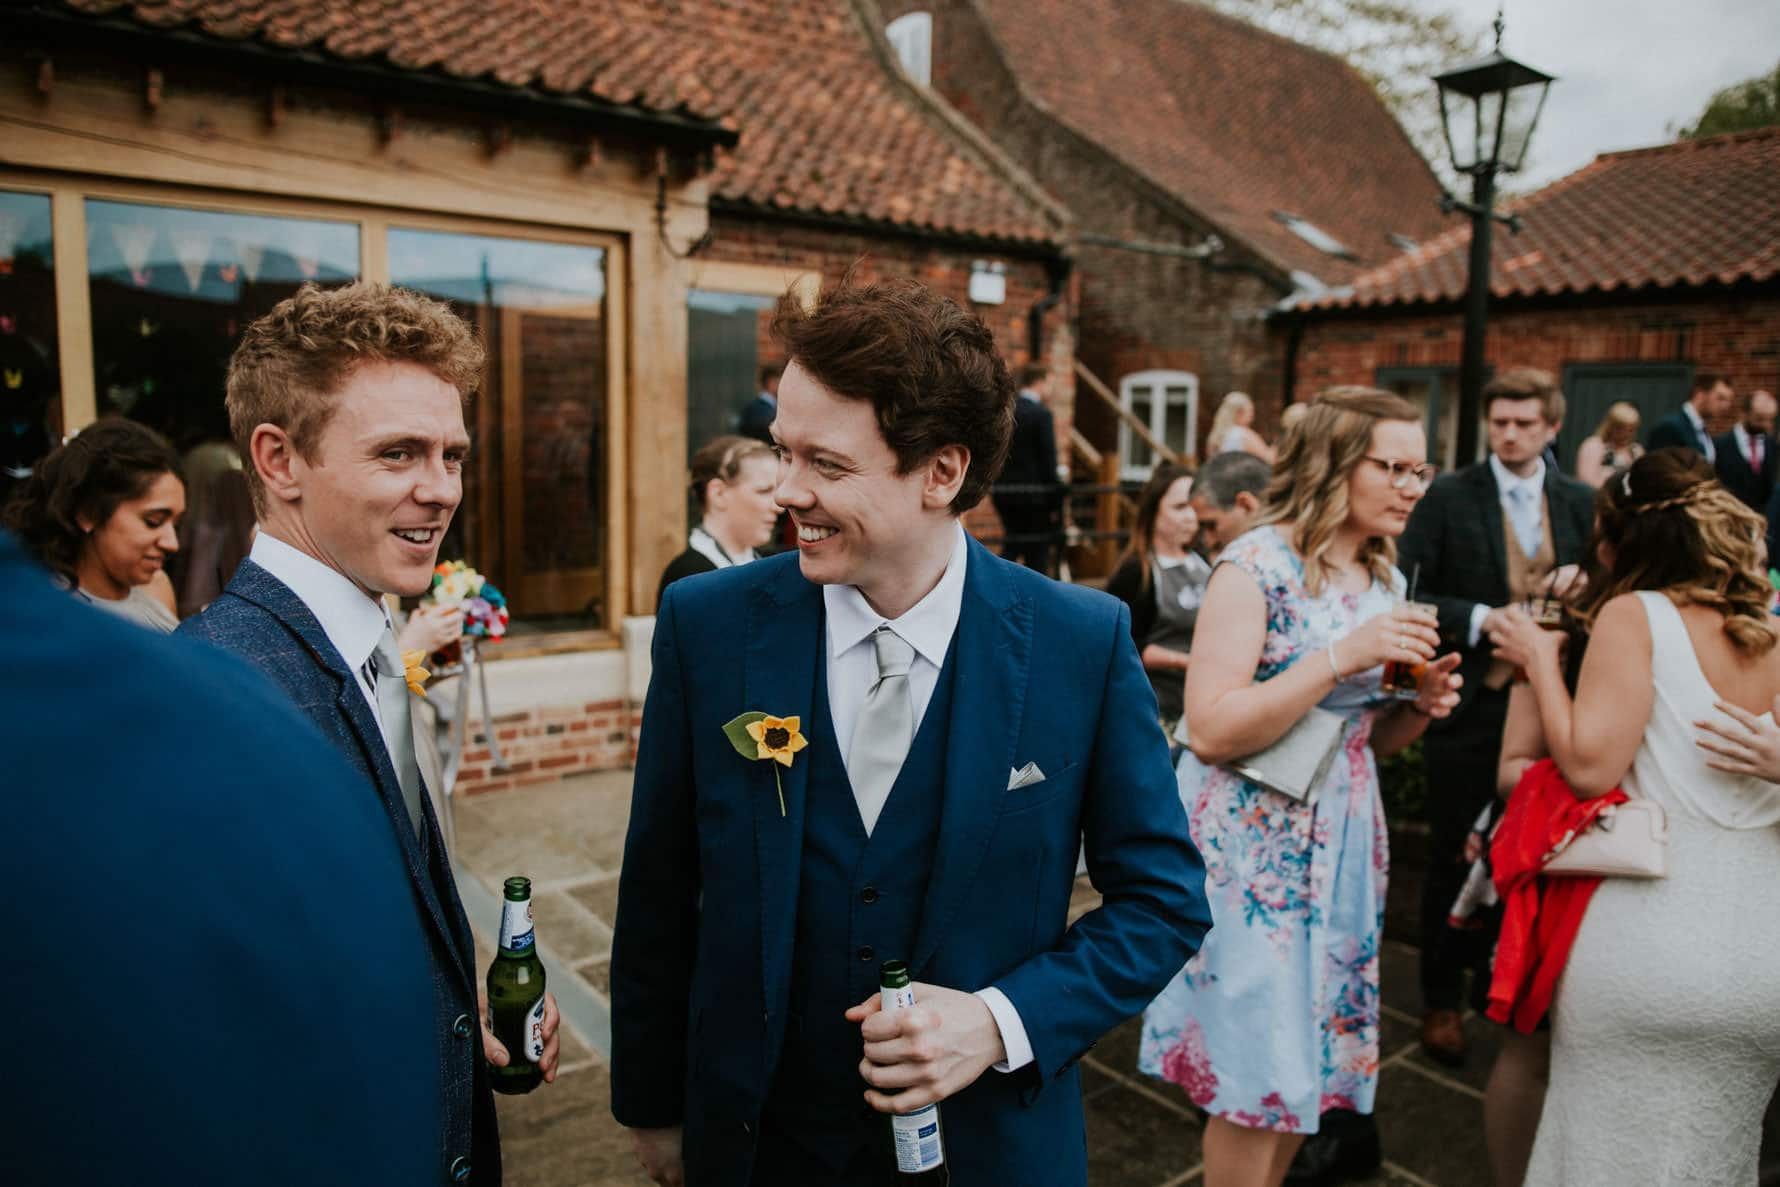 Wedding guests relaxing during the drinks reception at granary wedding barn